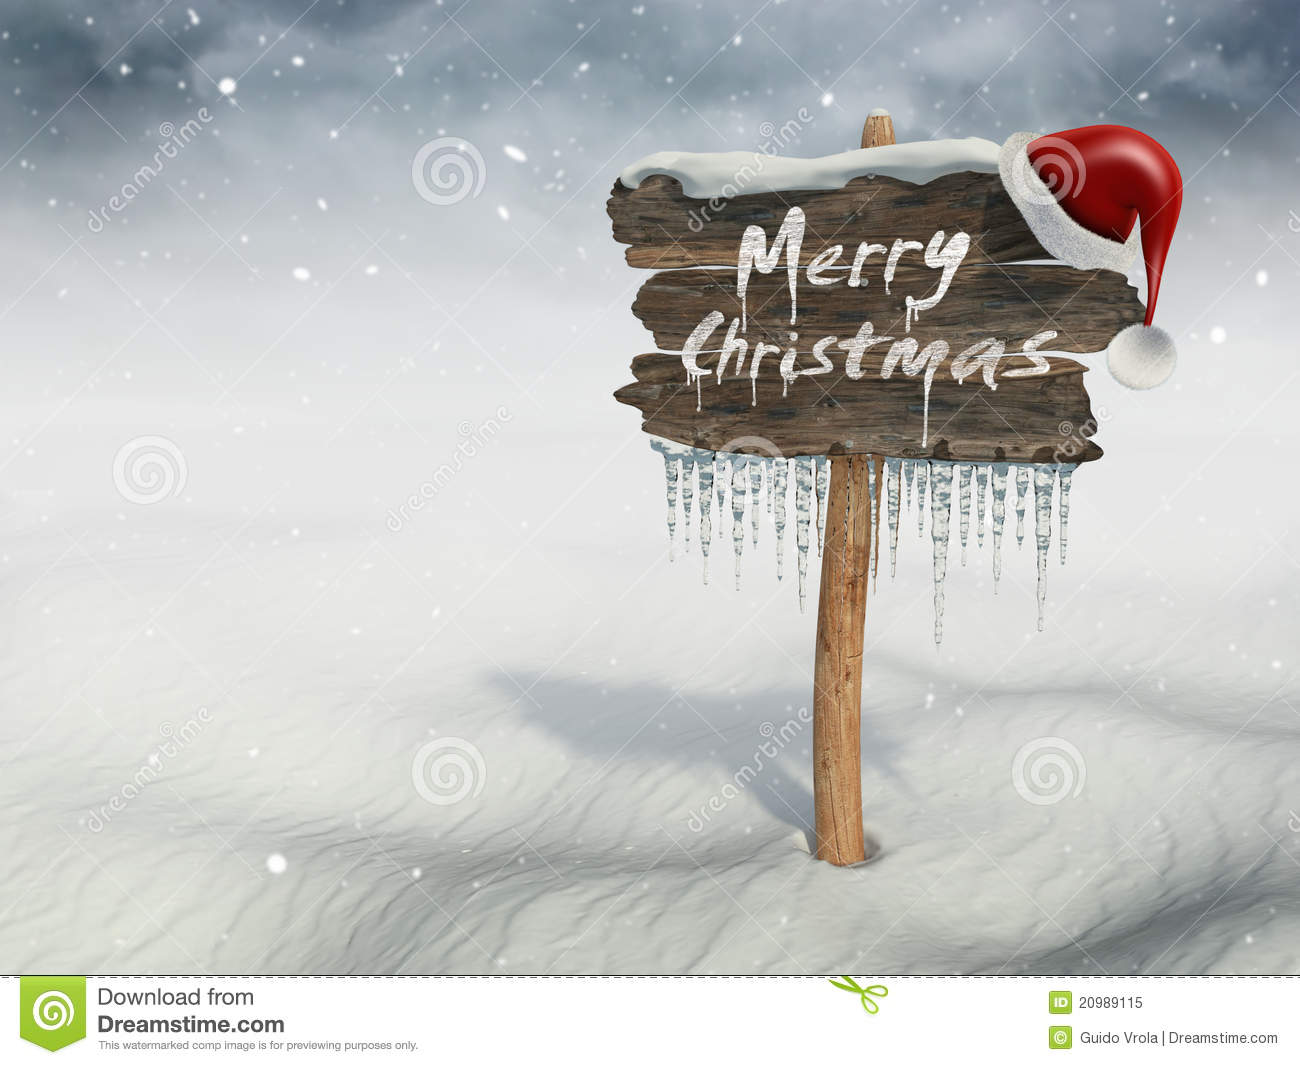 download merry christmas wood sign stock illustration illustration of panel 20989115 - Merry Christmas Wooden Sign